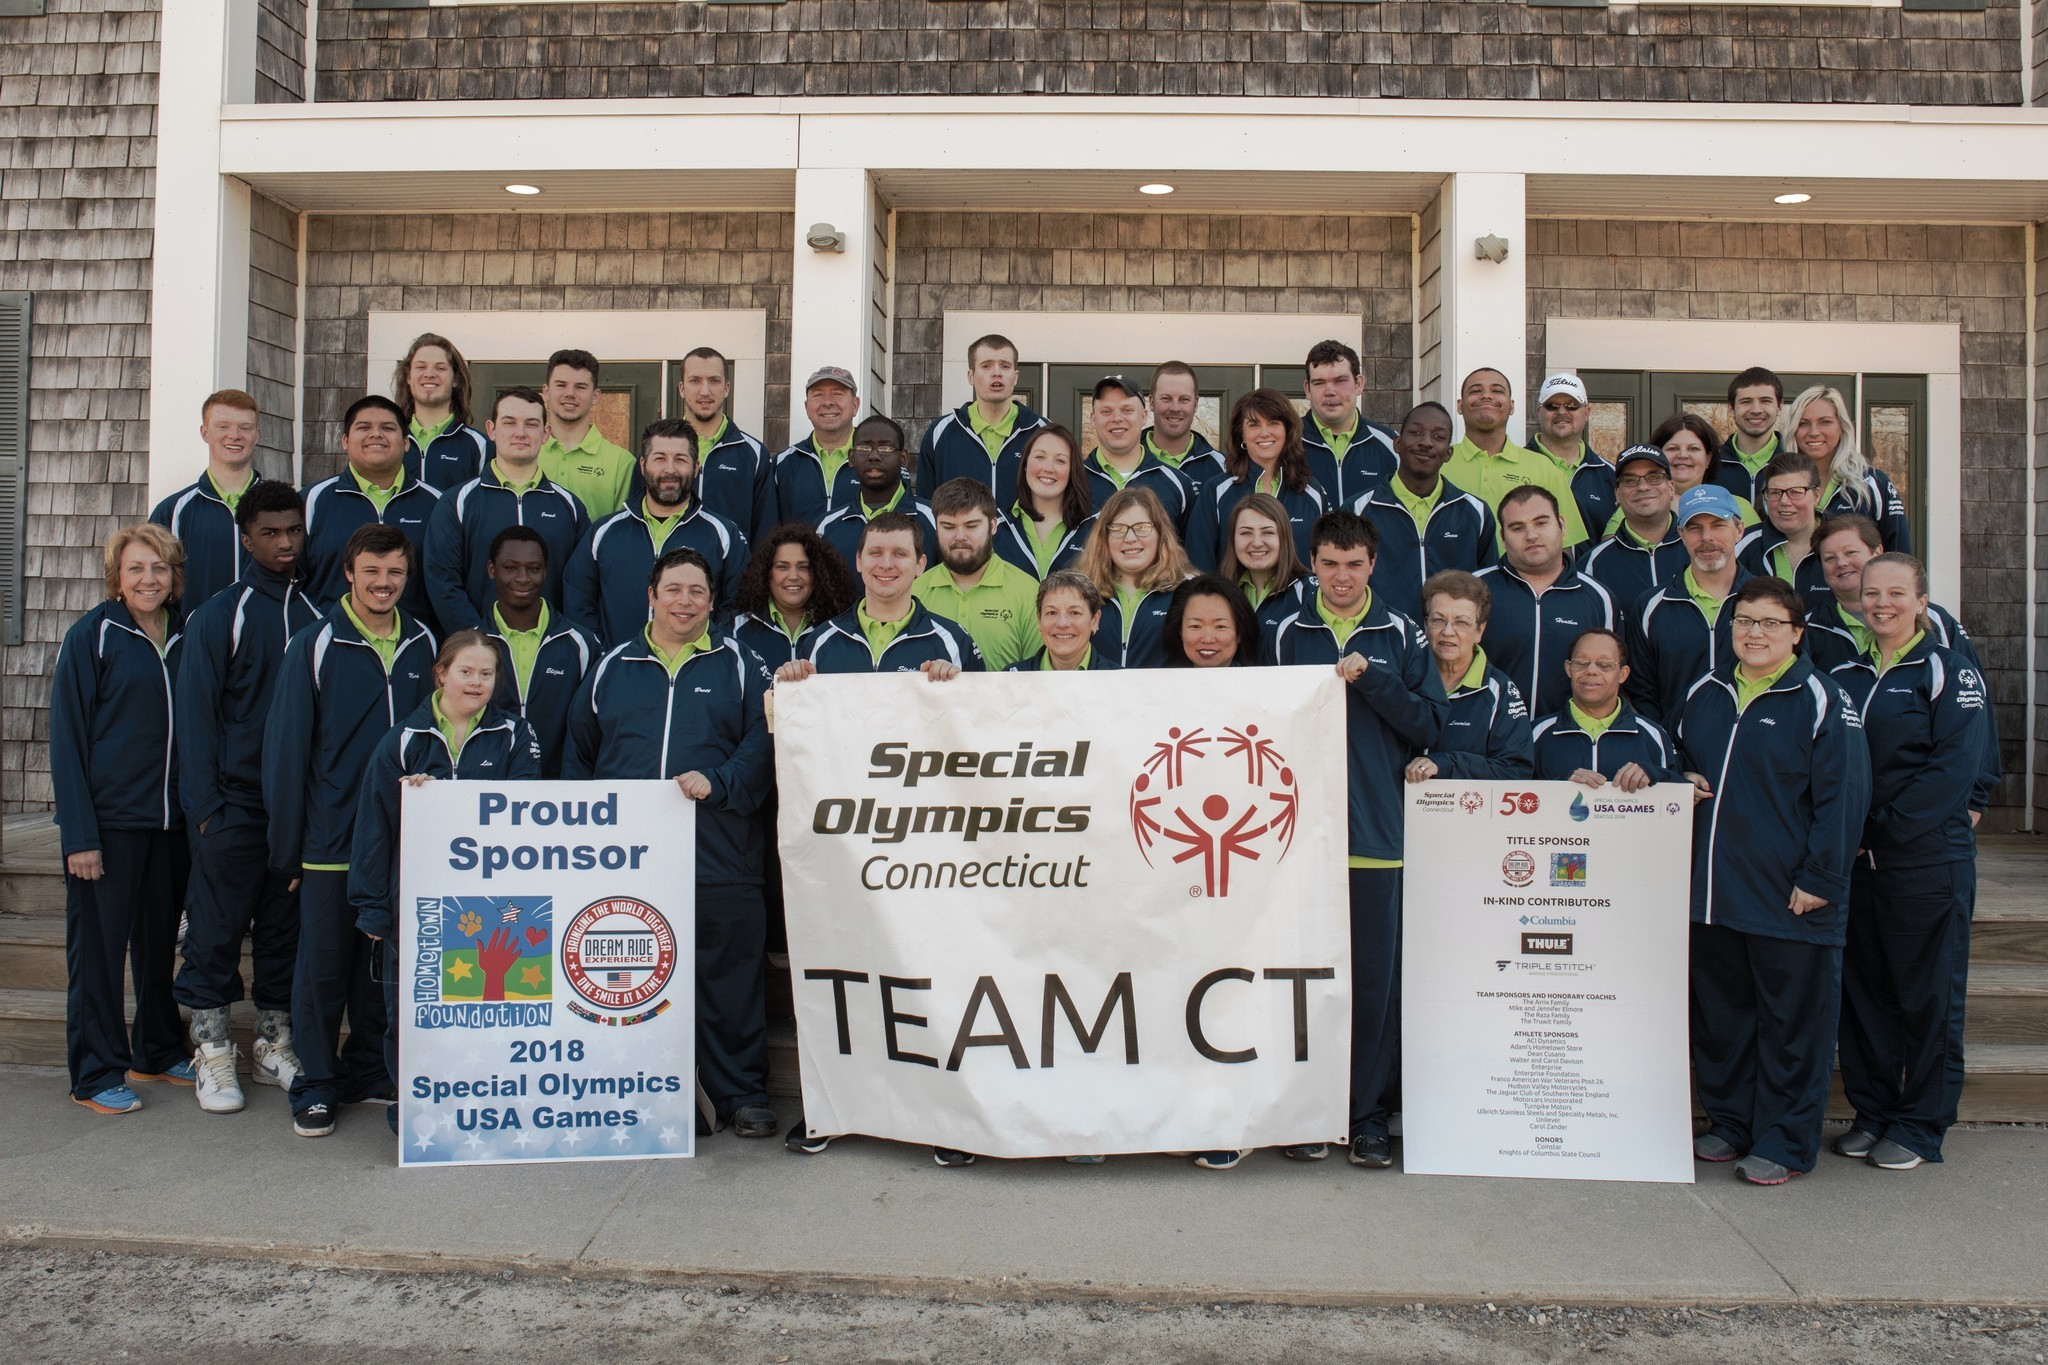 Team Connecticut to Compete at the Special Olympics USA Games in Seattle, July 1-6